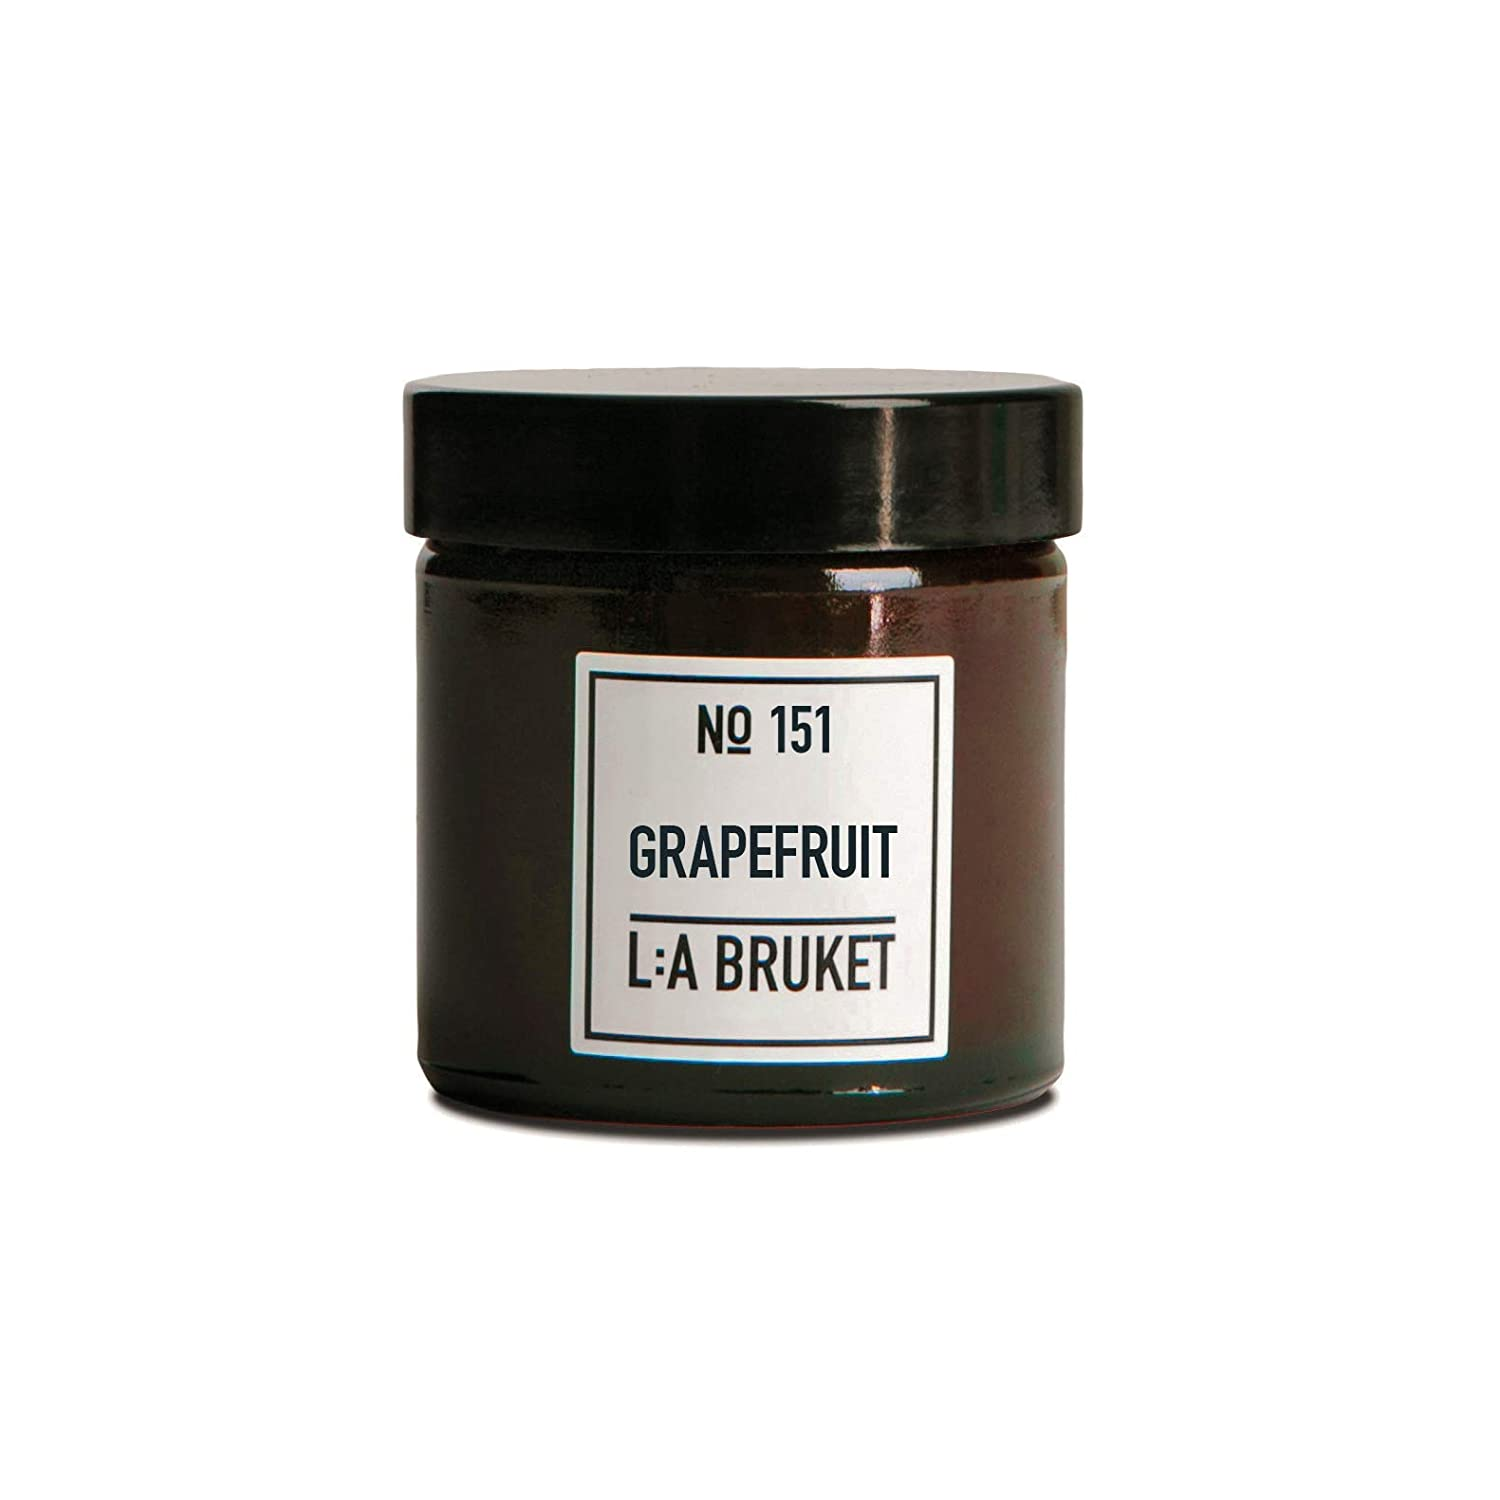 L Denver Mall A Bruket No. Grapefruit Ranking TOP2 50g Candles 151Scented